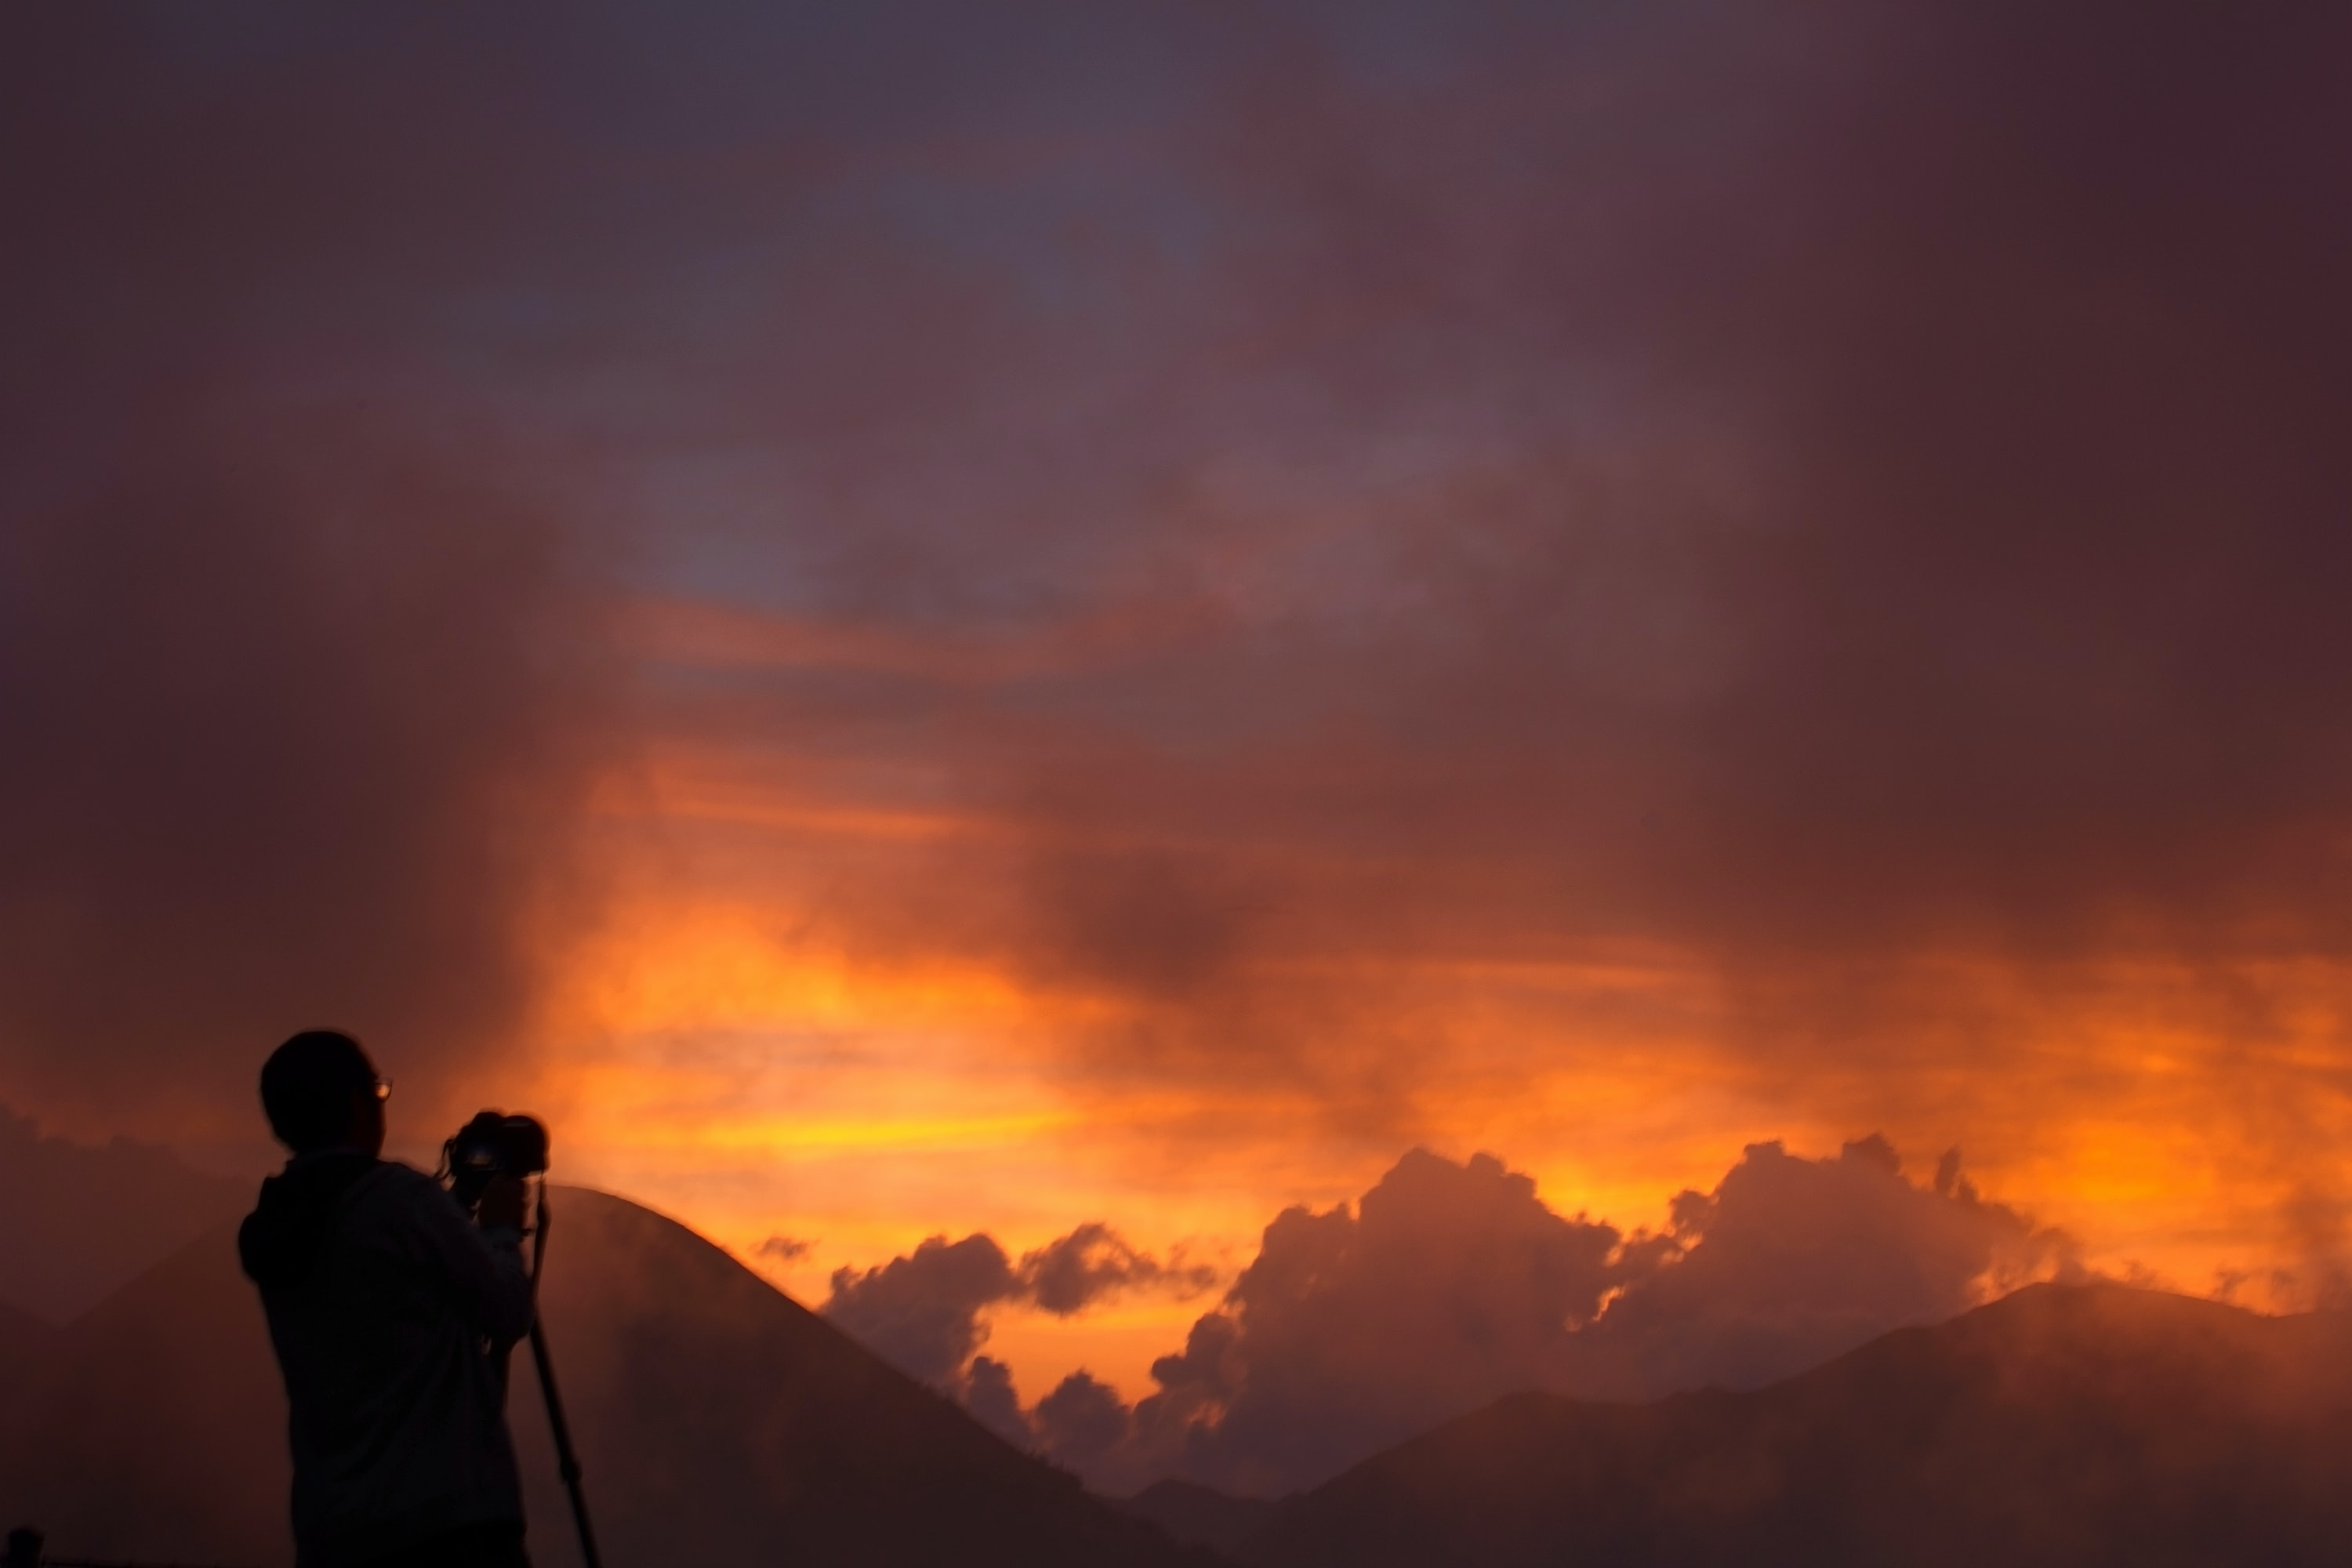 silhouette of person holding camera facing orange and yellow sky